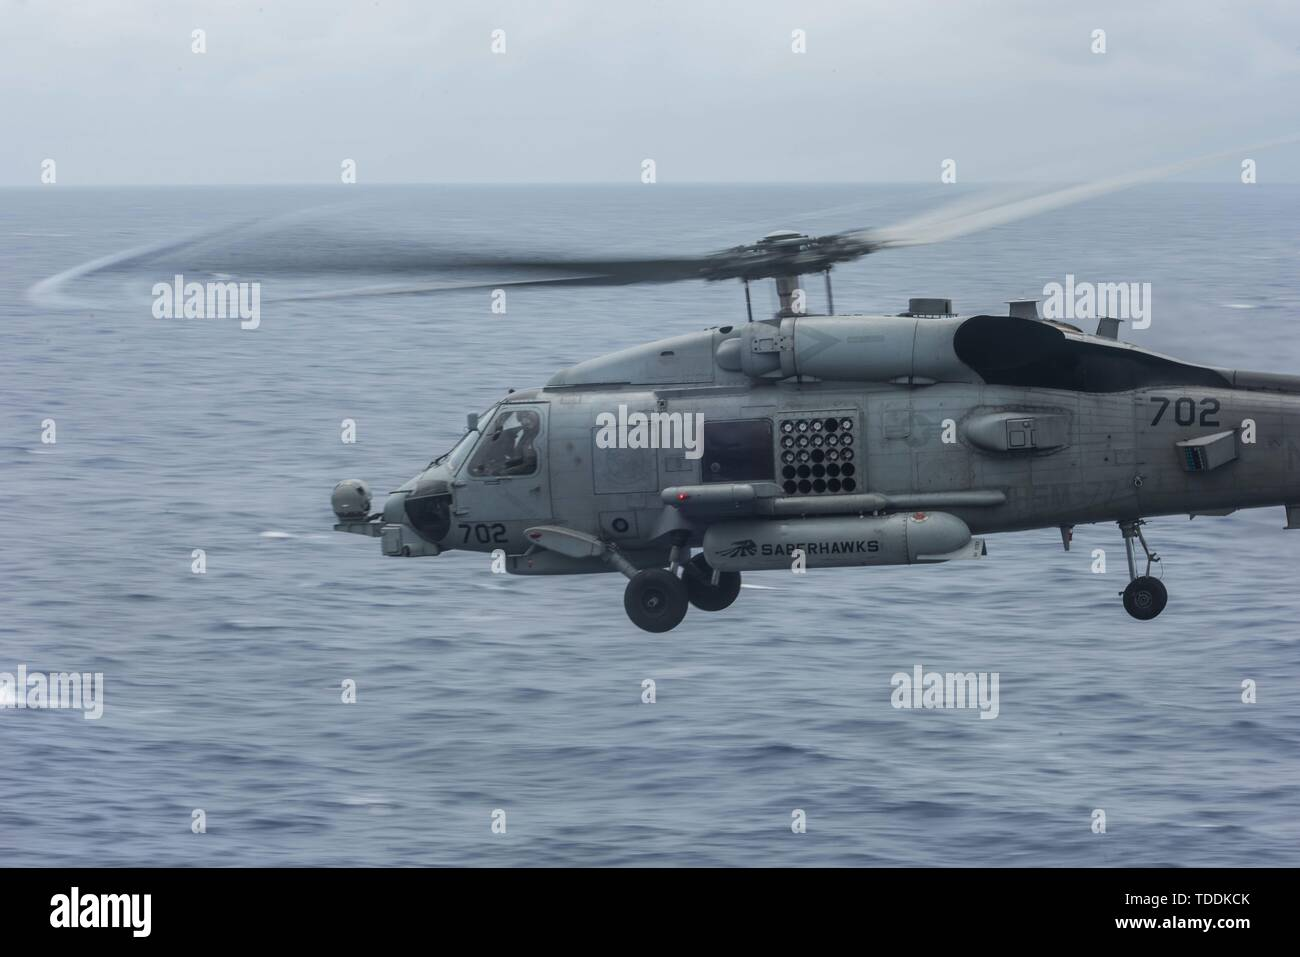 190613-N-ZF088-0003 SOUTH CHINA SEA (June 13, 2019) An MH-60R Sea Hawk of Helicopter Maritime Strike Squadron (HSM) 77 flies beside the Navy's forward-deployed aircraft carrier USS Ronald Reagan (CVN 76) during flight deck operations. Ronald Reagan, the flagship of Carrier Strike Group 5, provides a combat-ready force that protects and defends the collective maritime interests of its allies and partners in the Indo-Pacific region. (U.S. Navy photo by Mass Communication Specialist Seaman Gabriel A. Martinez/Released) - Stock Image